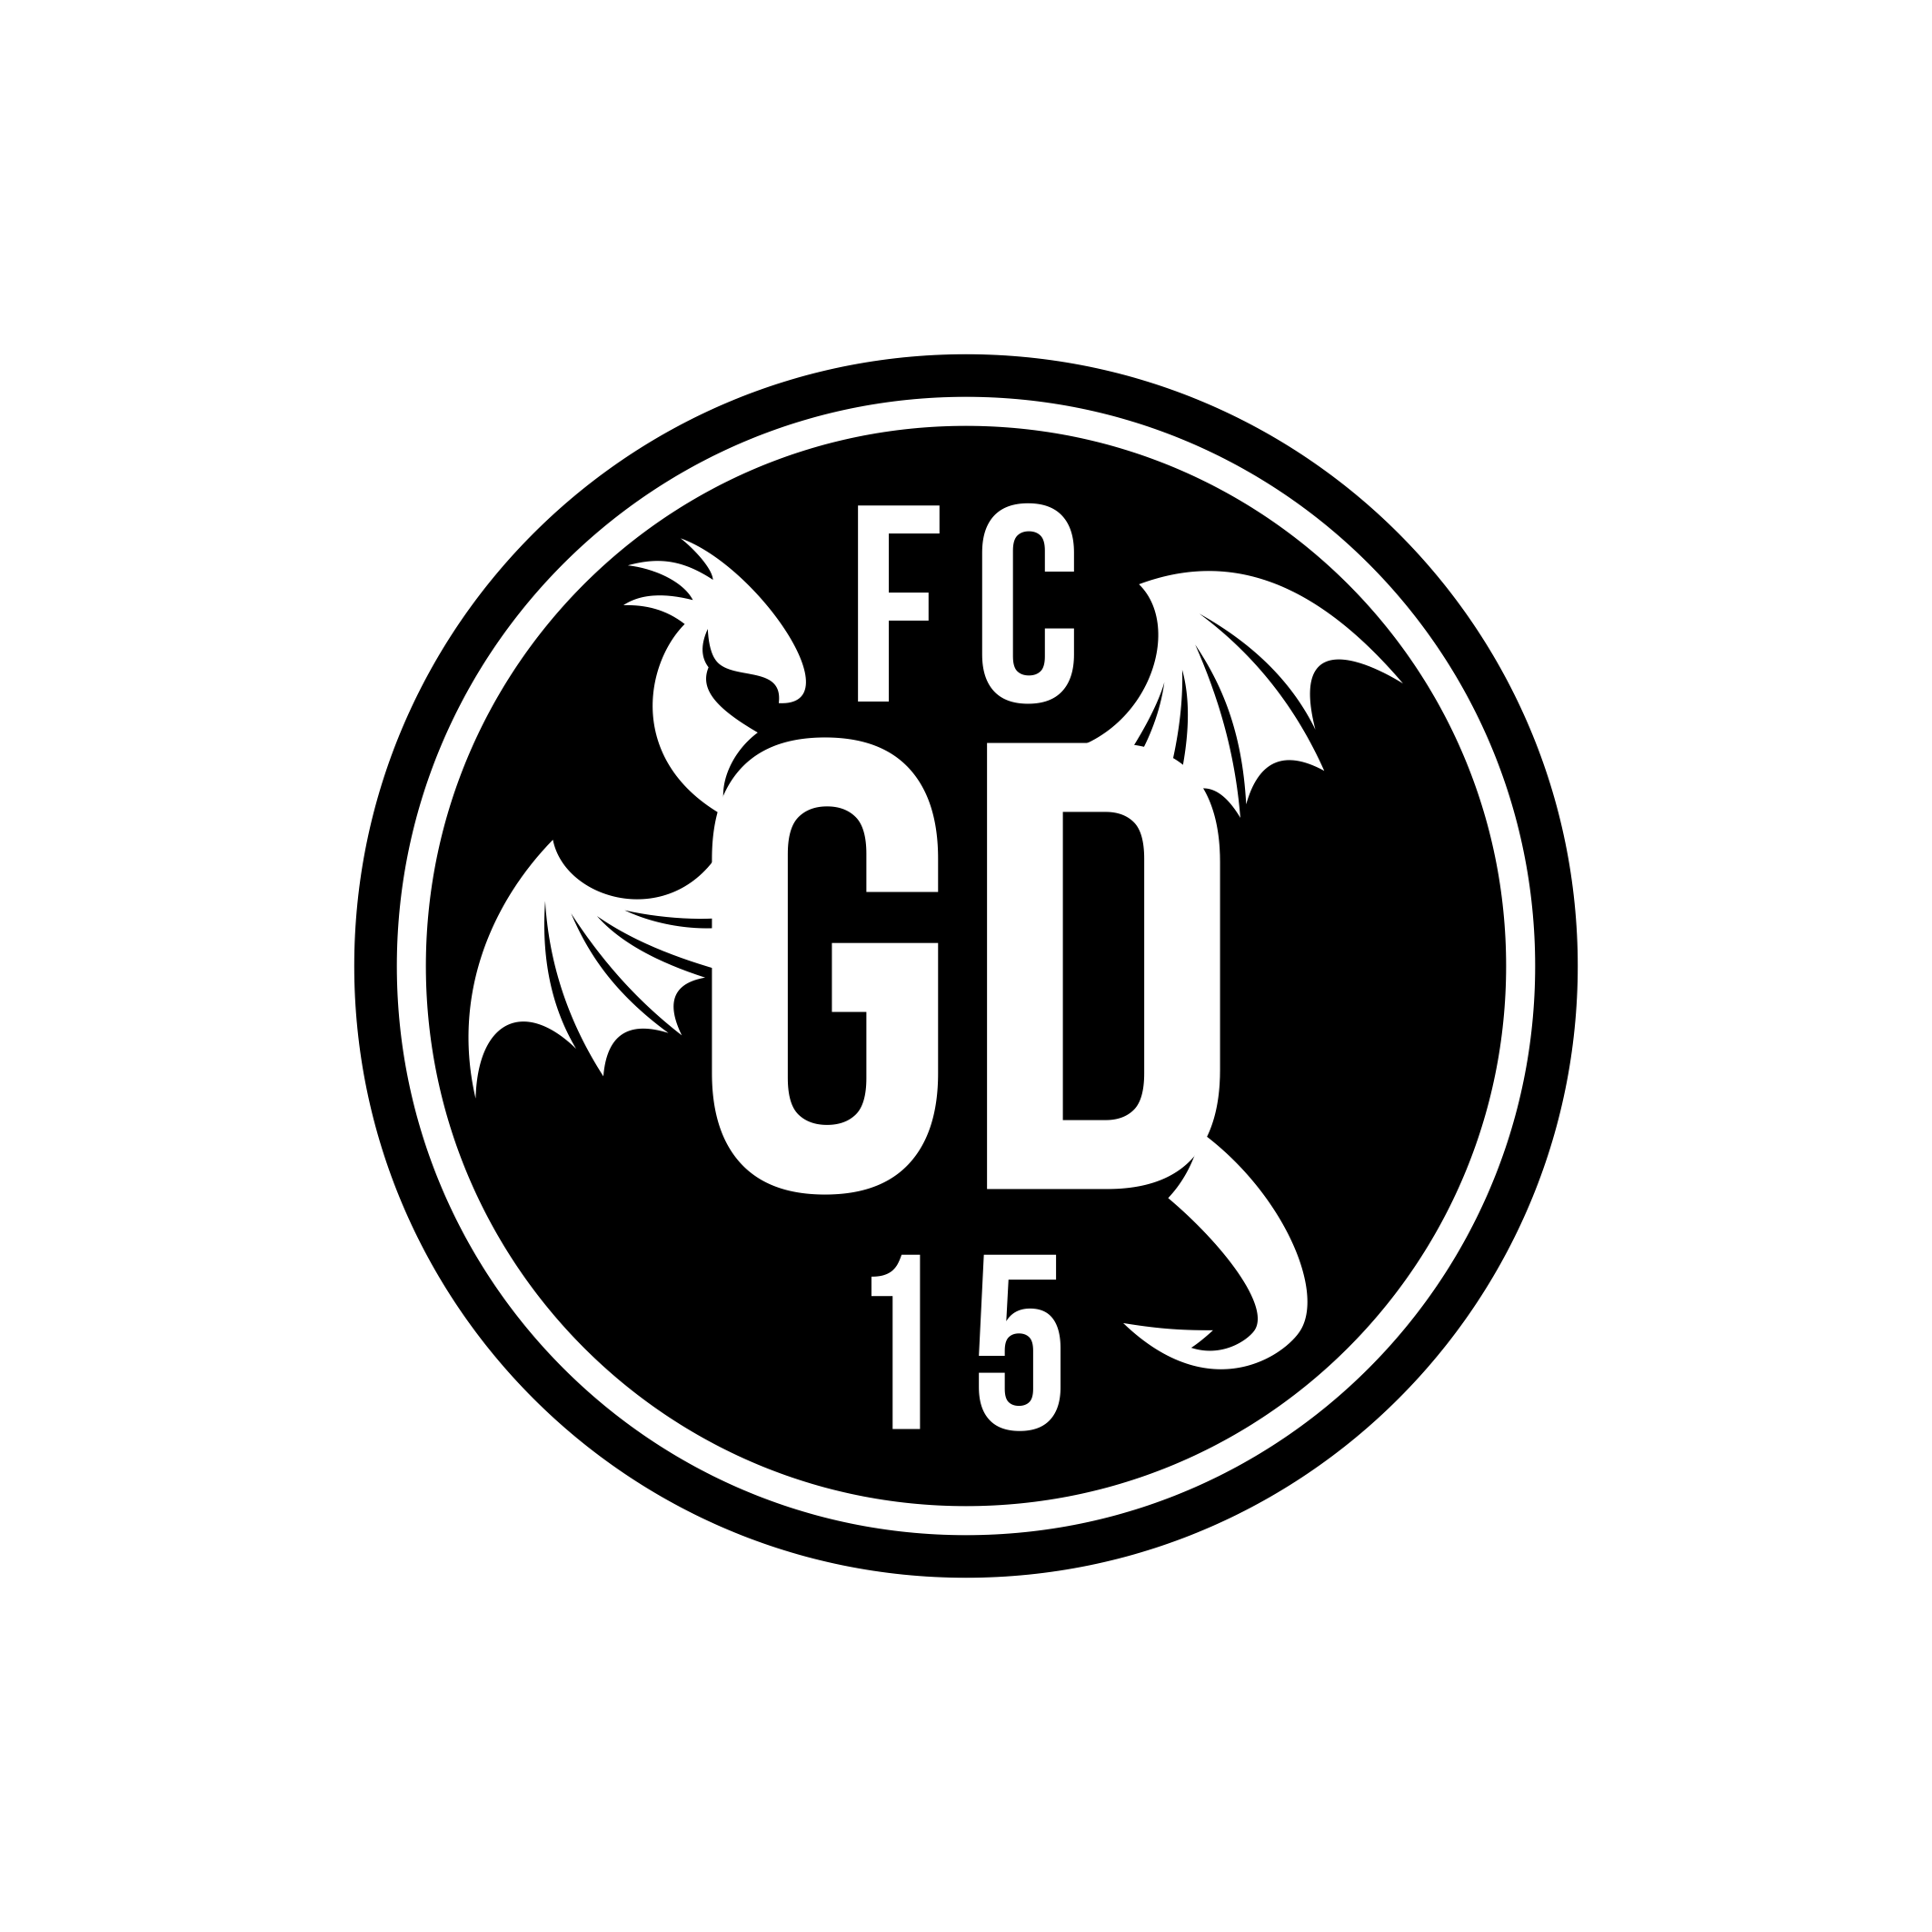 Soccer Team Roundel Design: Green Dragons FC